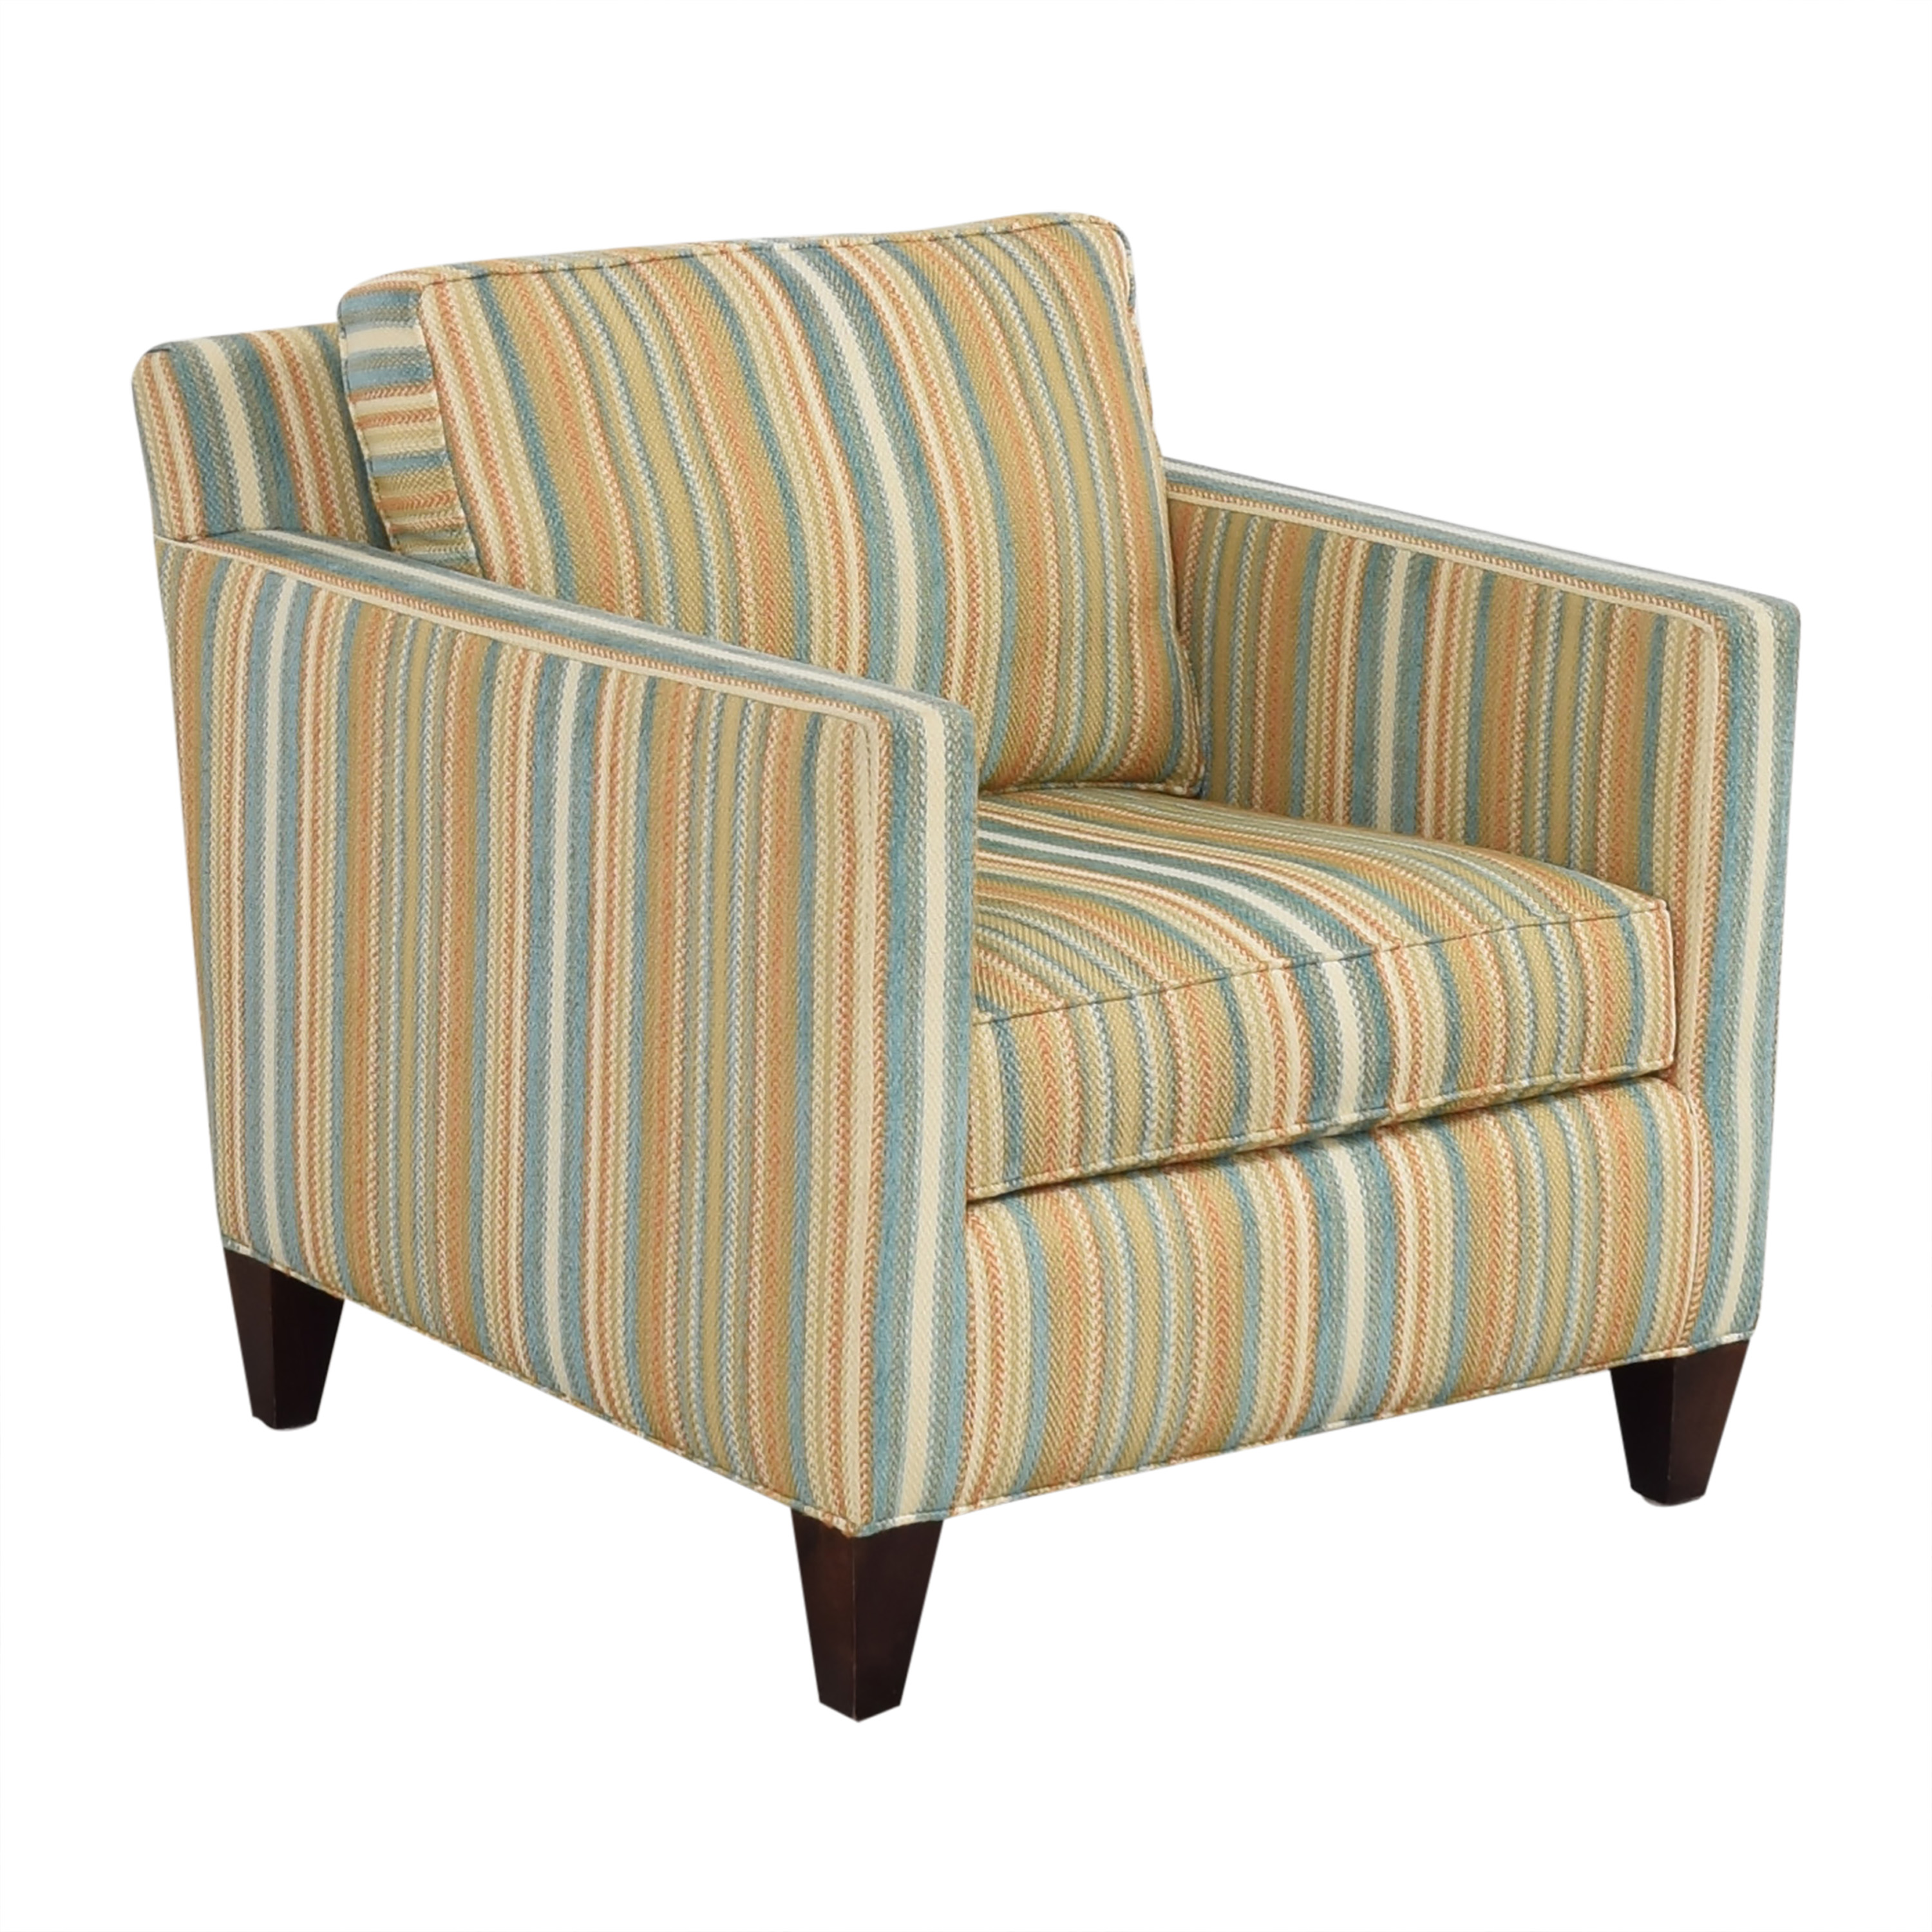 Thomasville Thomasville Striped Accent Chair ct